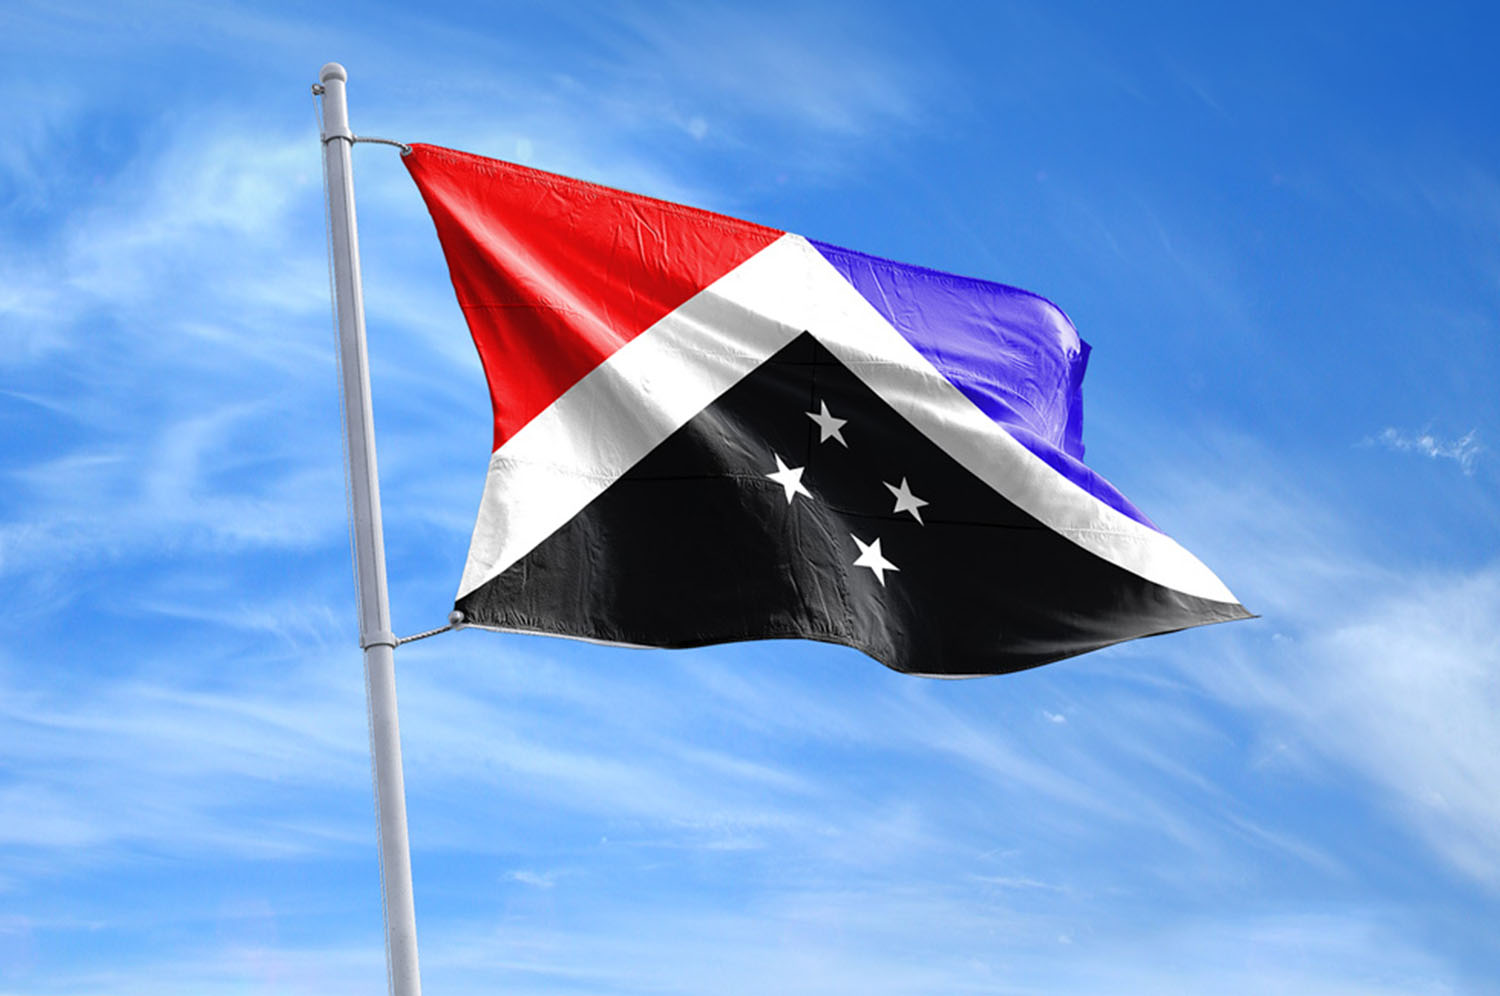 Flags of New Zealand